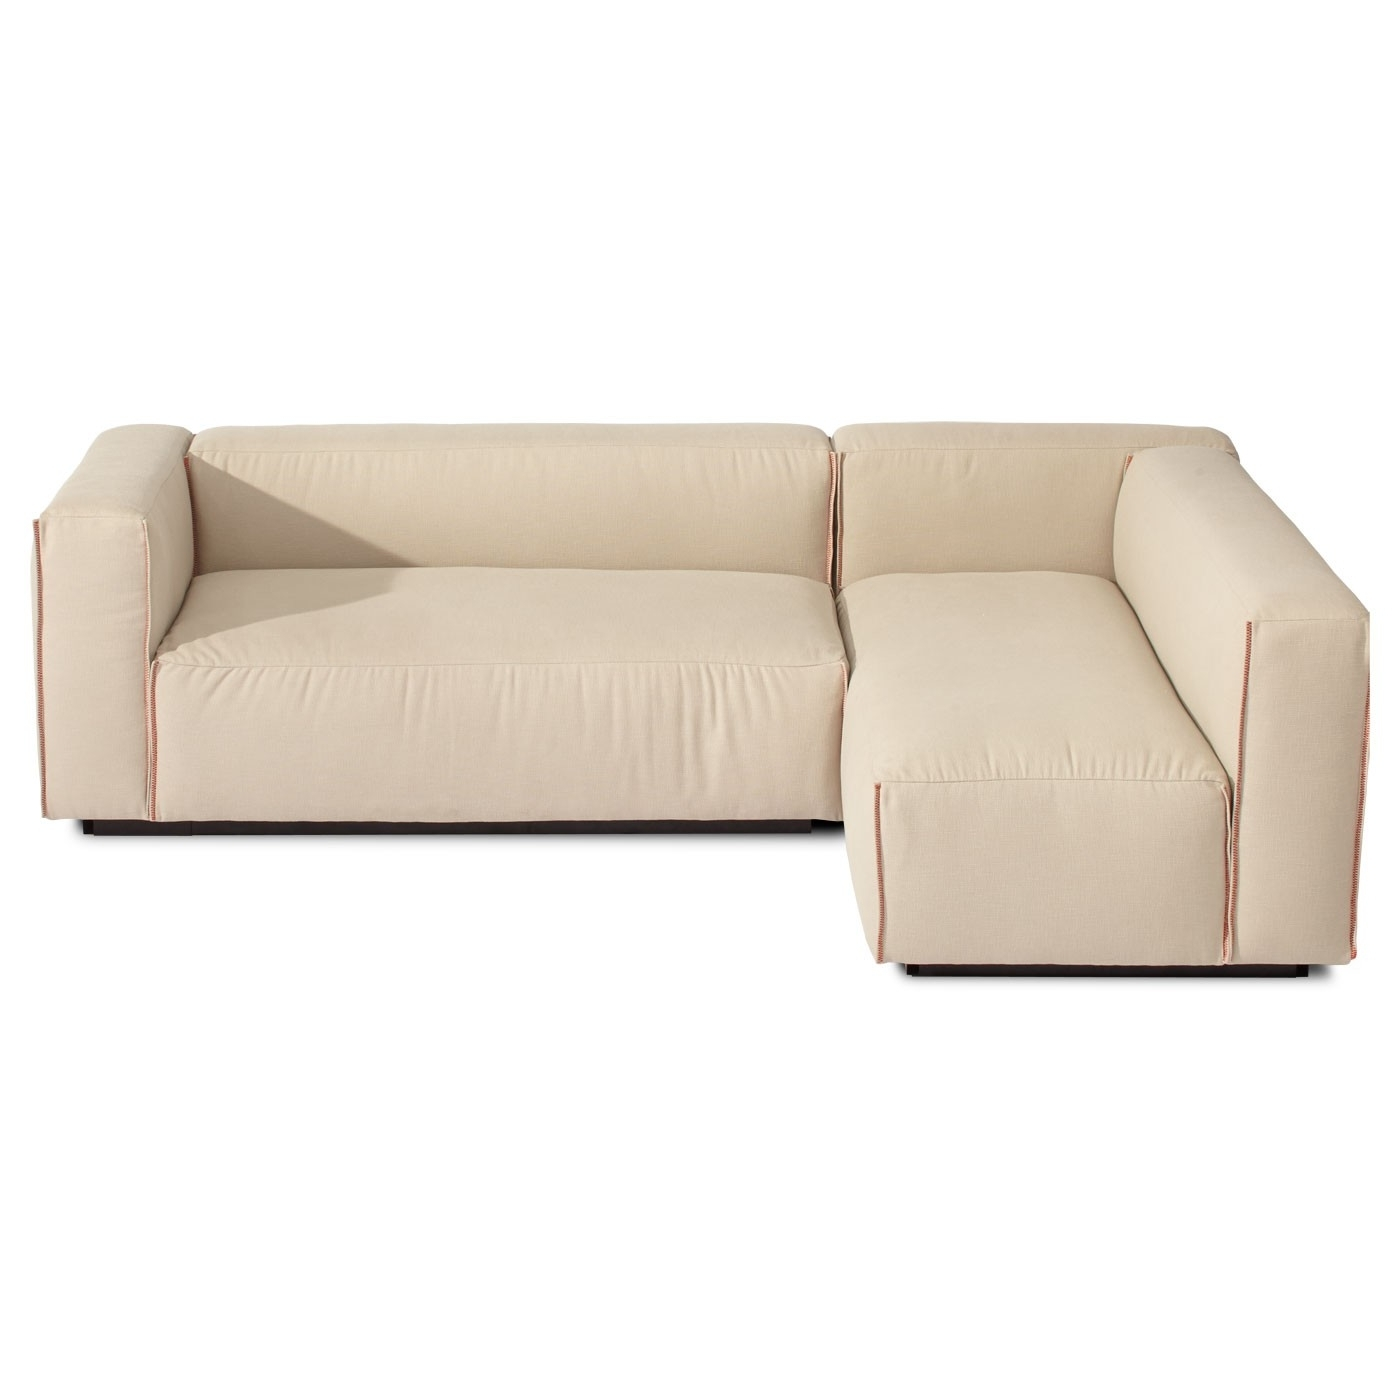 Most Popular Small Modular Sofas Throughout Small Space Modern Furniture, Small Curved Sofa Modern Sofas For (View 7 of 15)